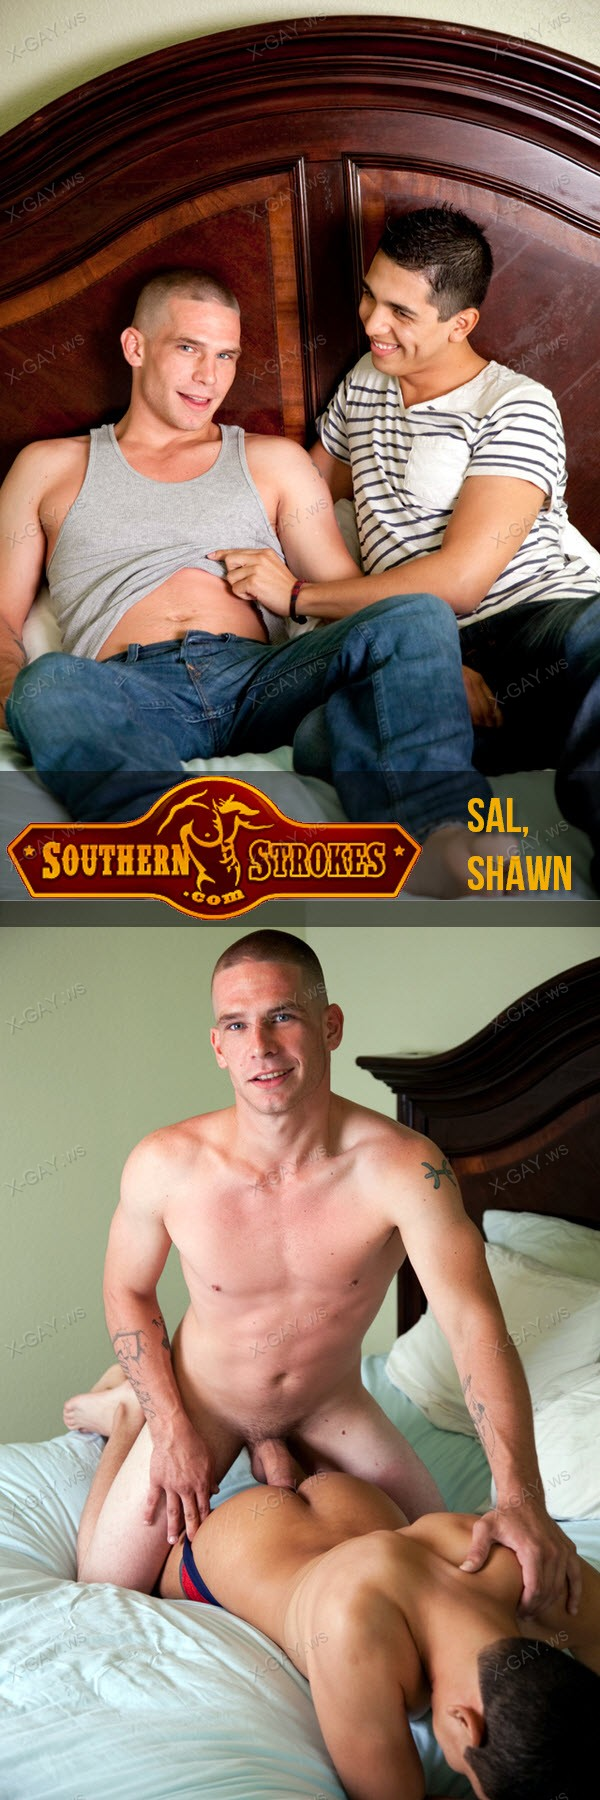 SouthernStrokes: Sal, Shawn